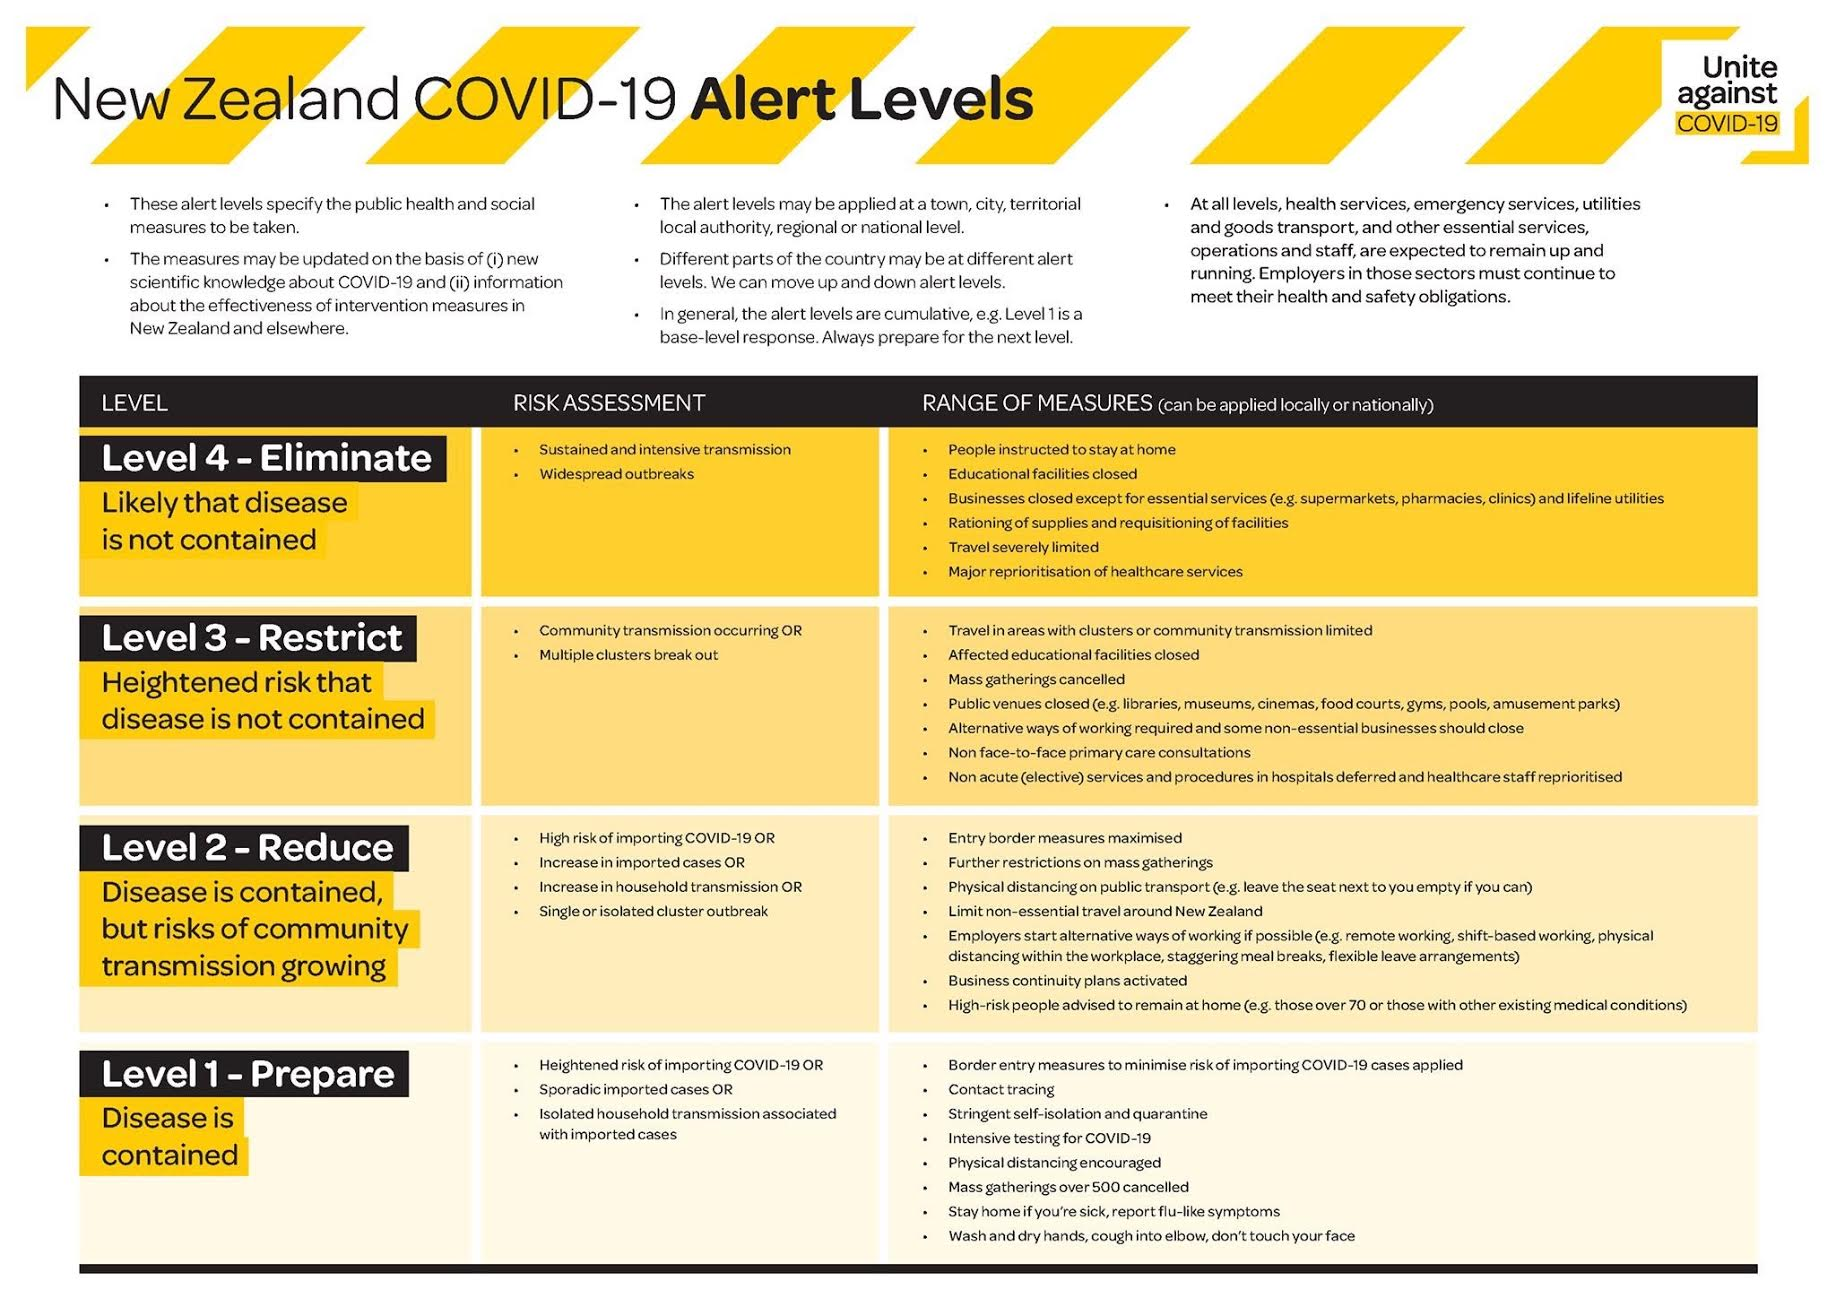 Coronavirus live updates in NZ and around the world on 23 March